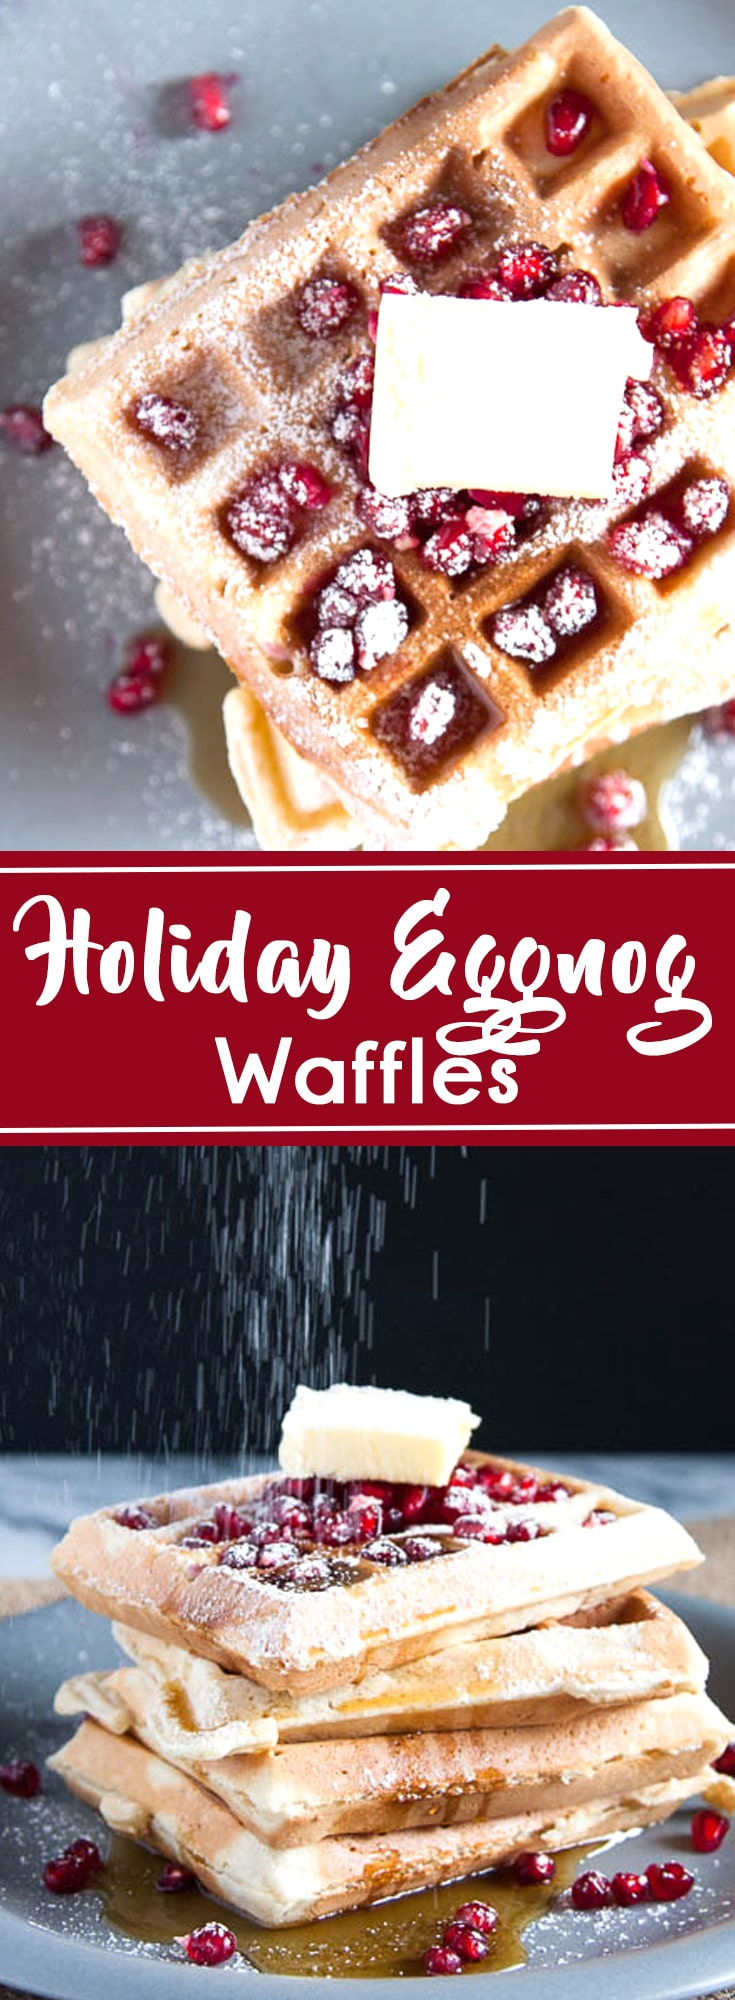 Eggnog Waffles are creamy, sweetly spiced with a pinch of nutmeg, and excellent for holiday breakfasts!